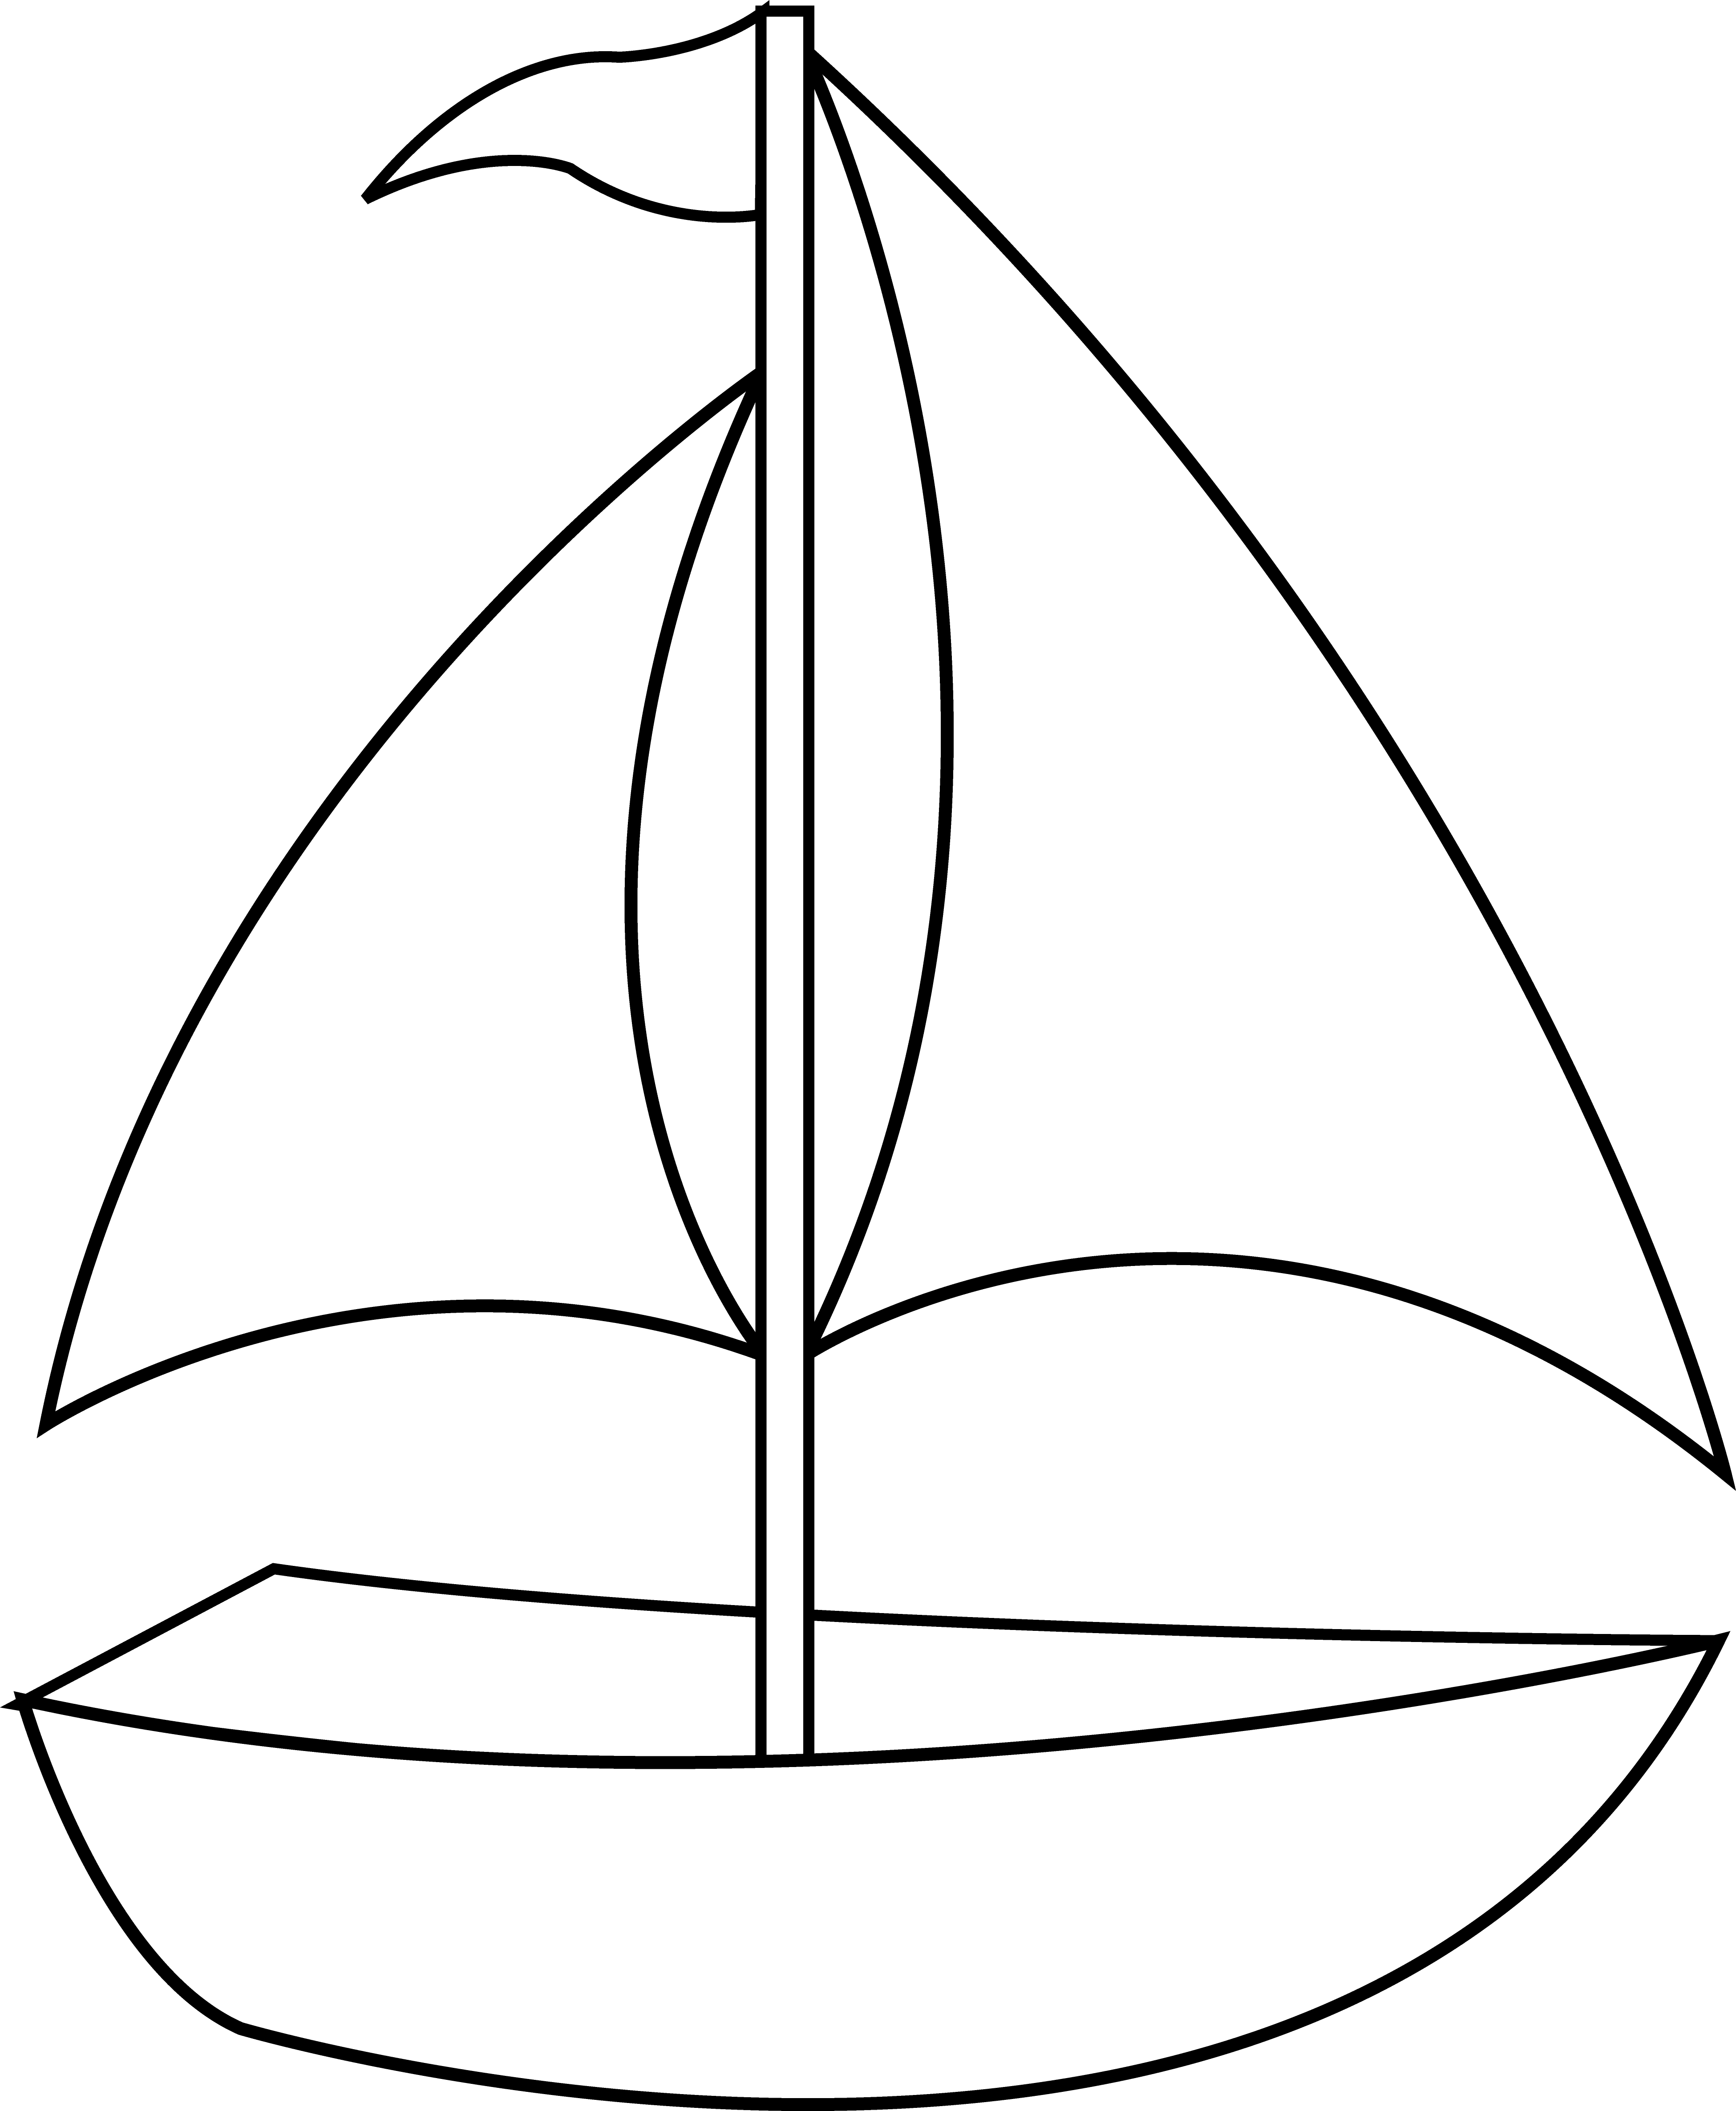 Row toy free pnglogocoloring. Boat clipart printable